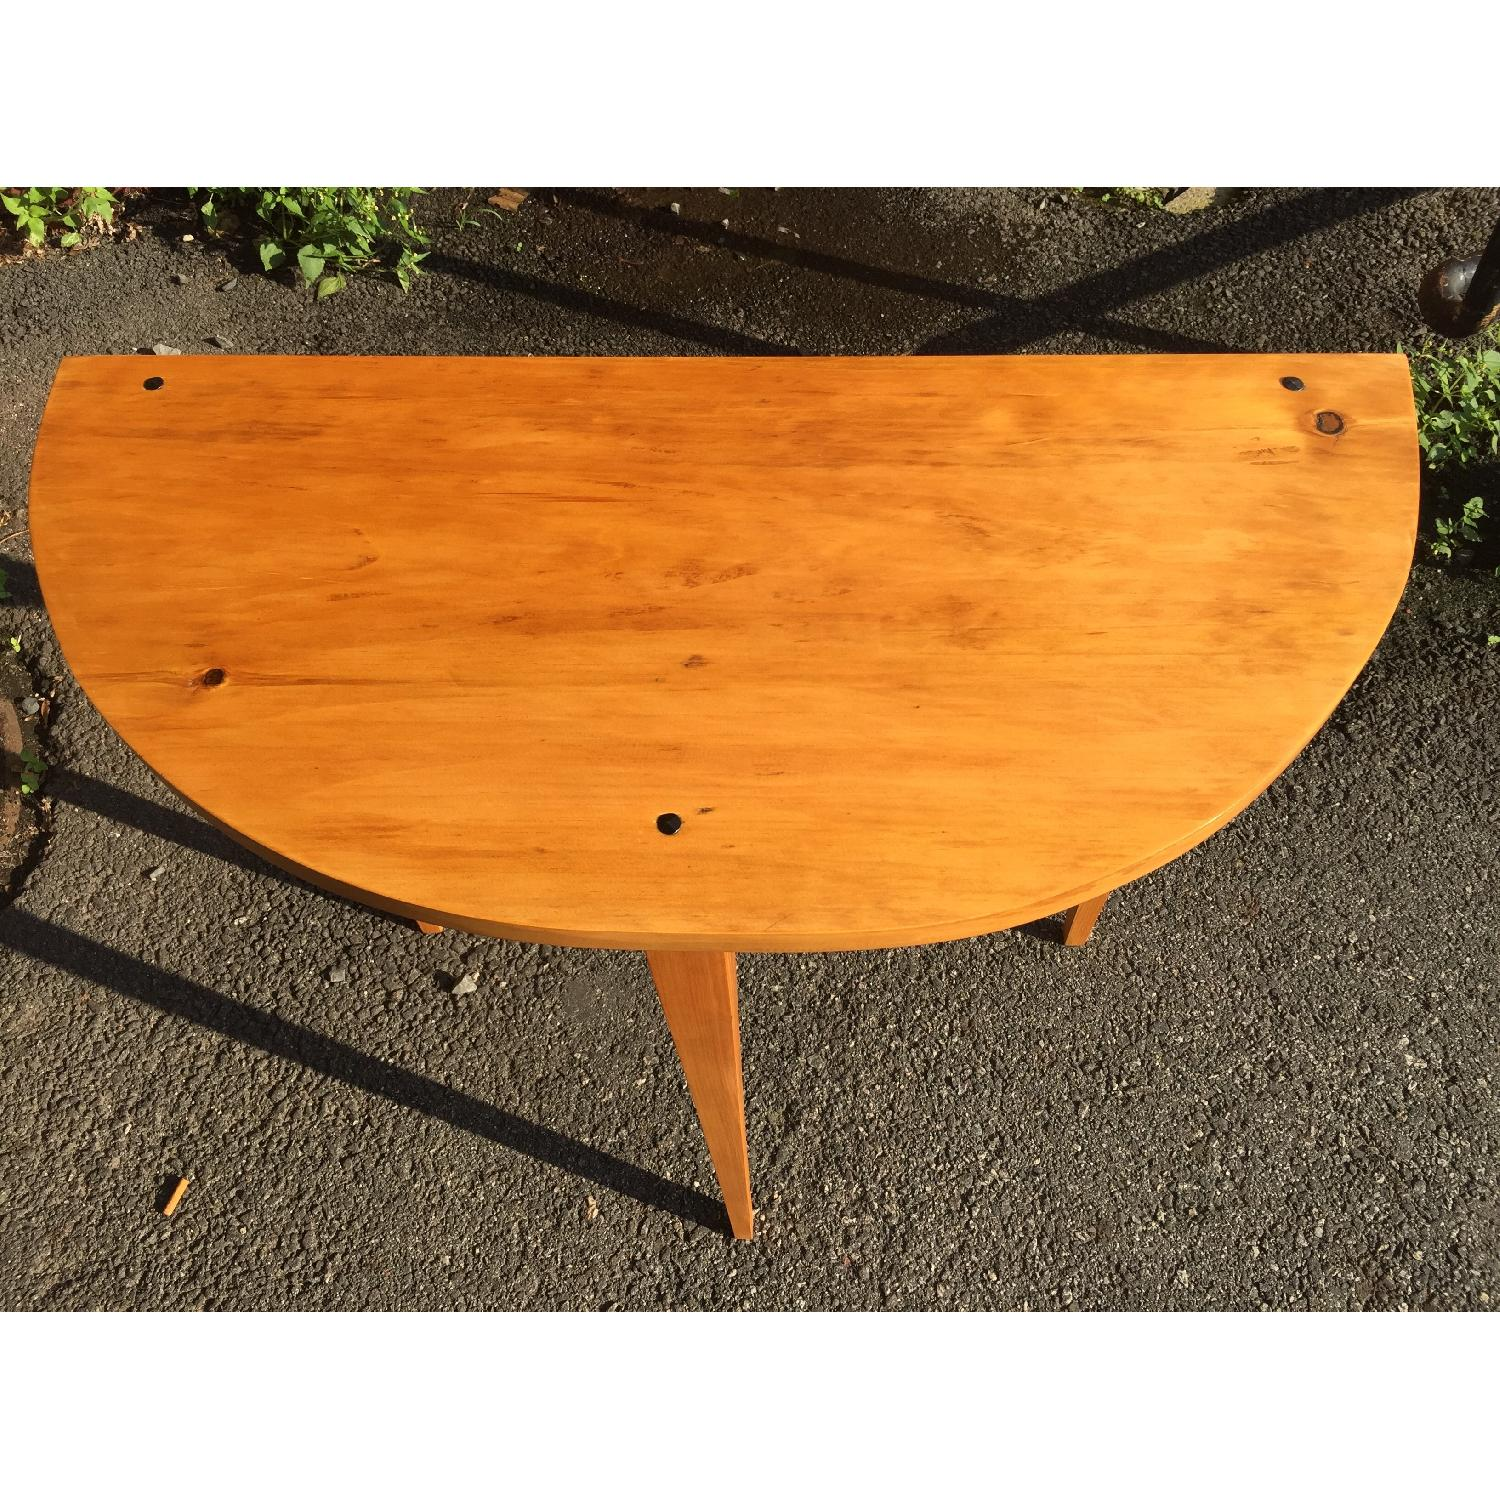 Handmade Demilune Table